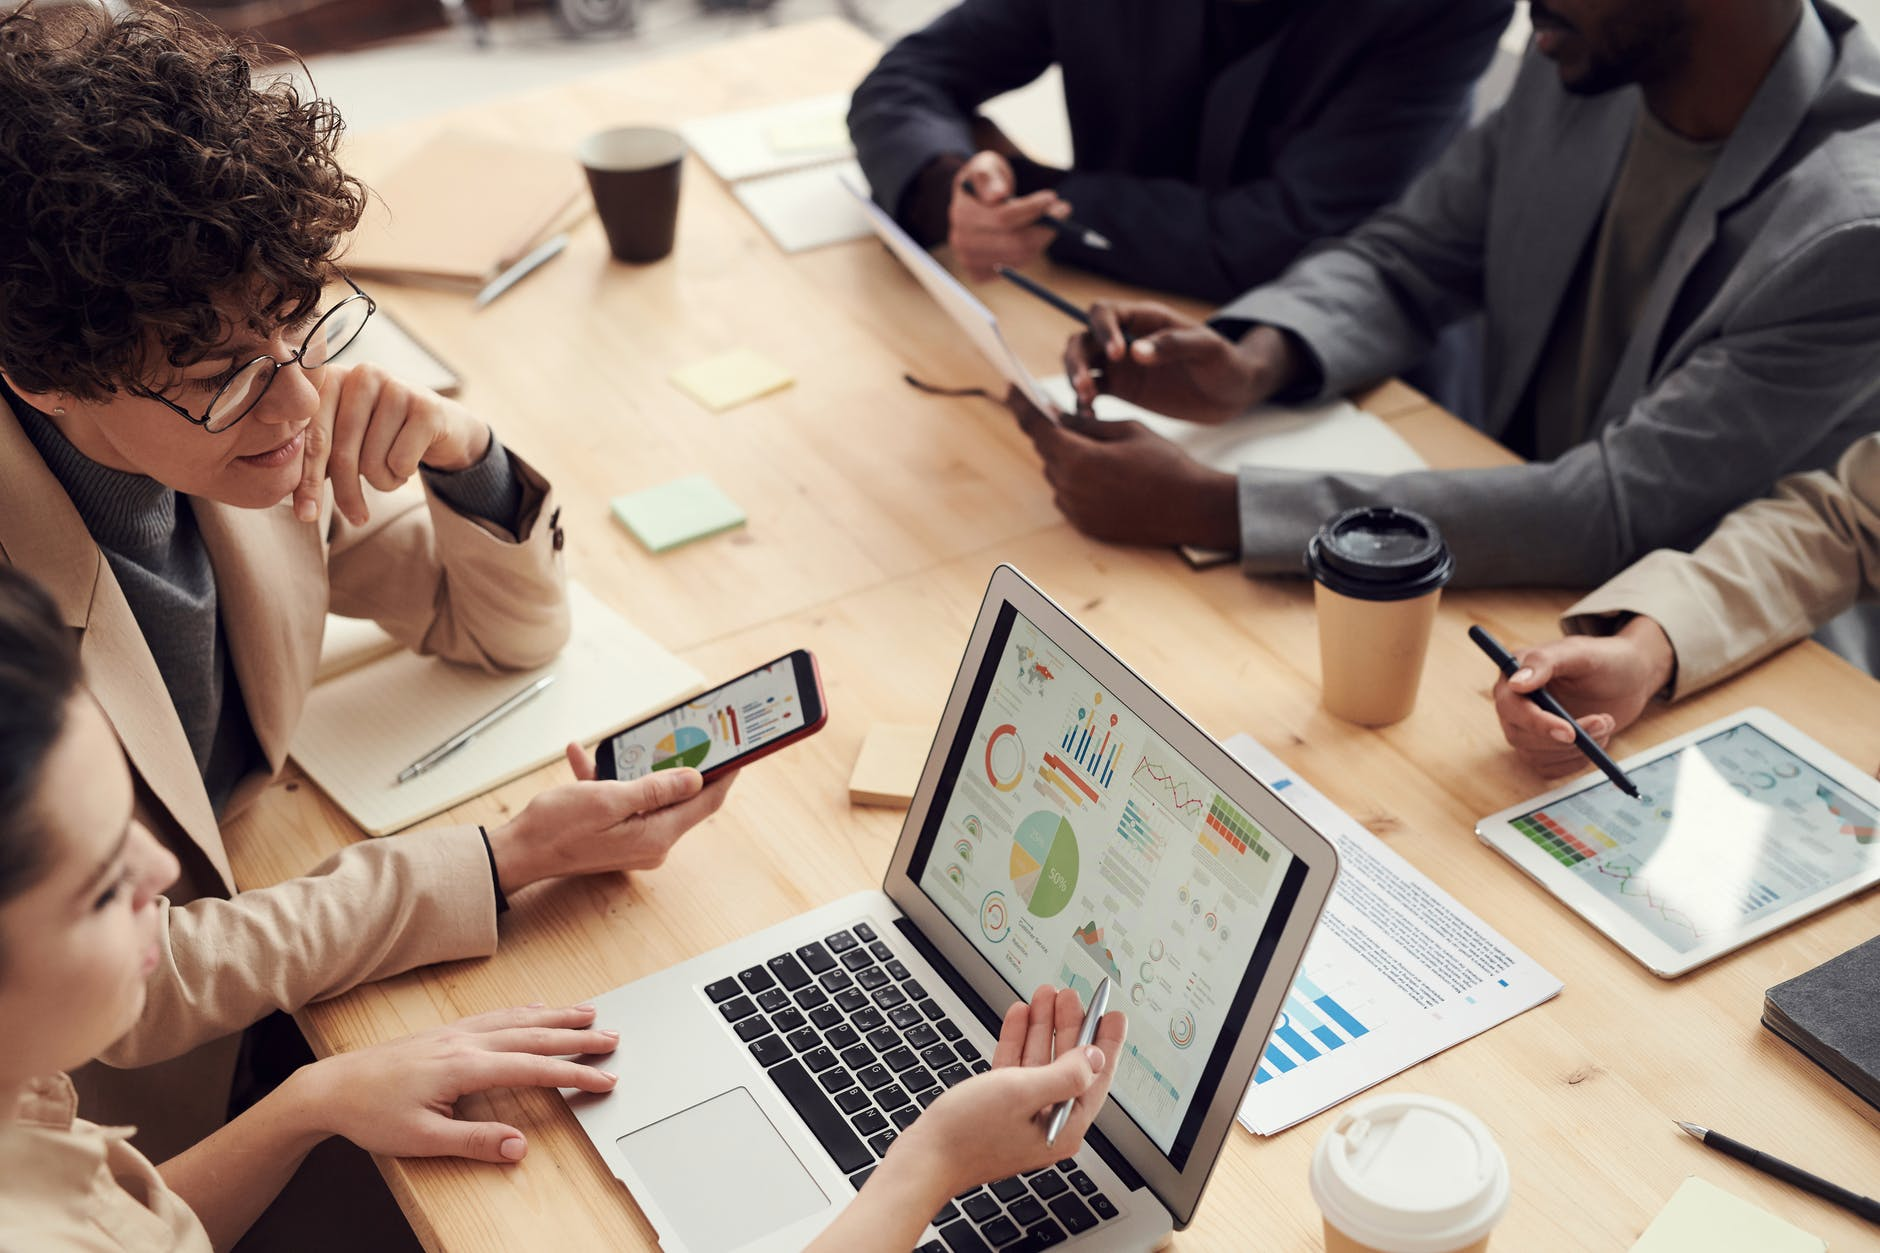 Collaborating on projects improve company culture